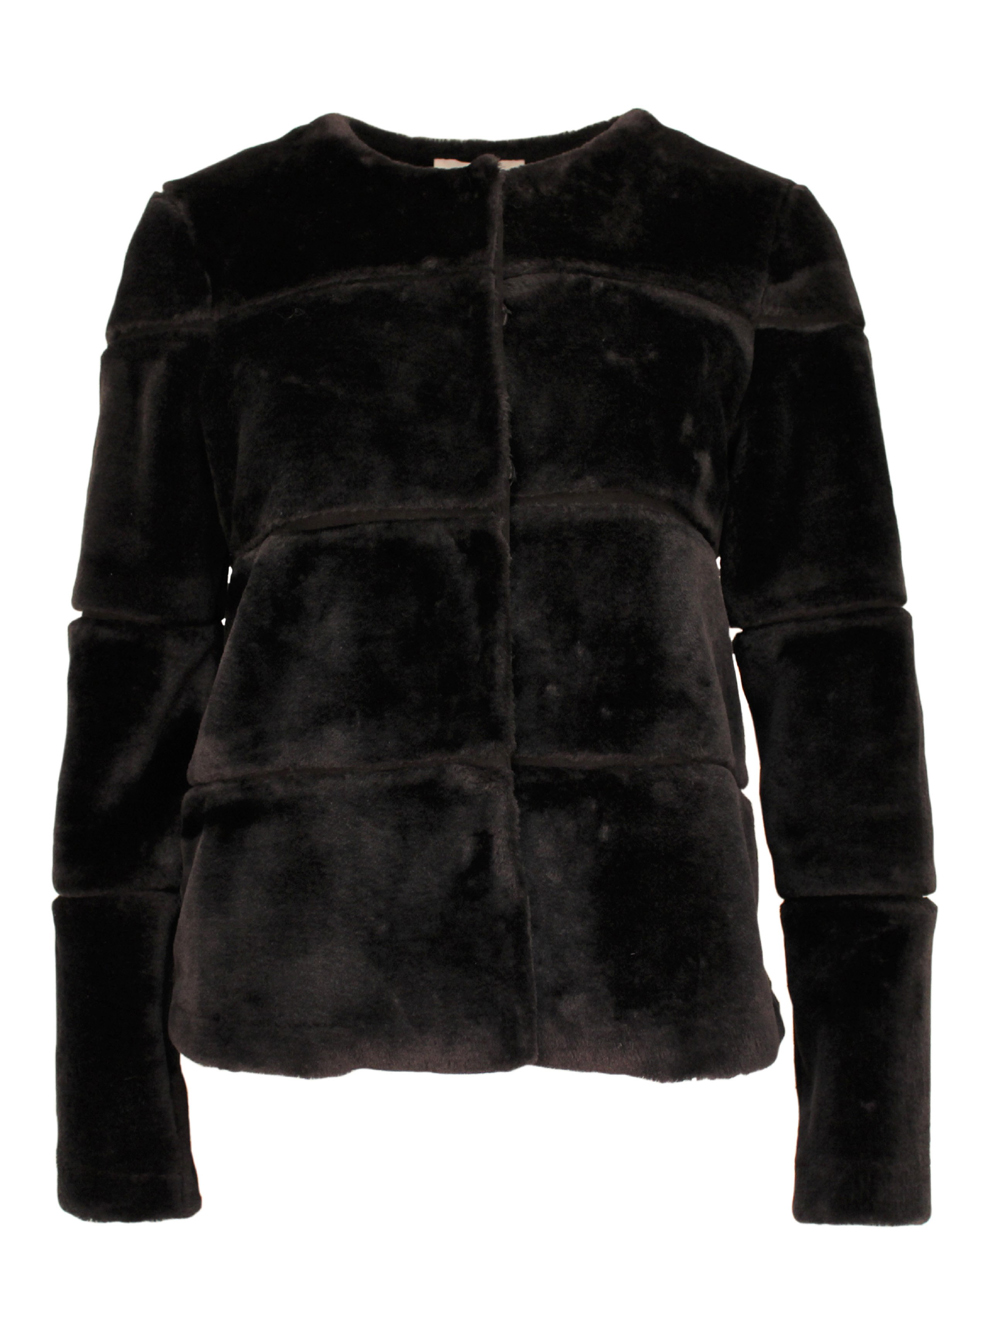 New Kahla Faux Fur jacket Black